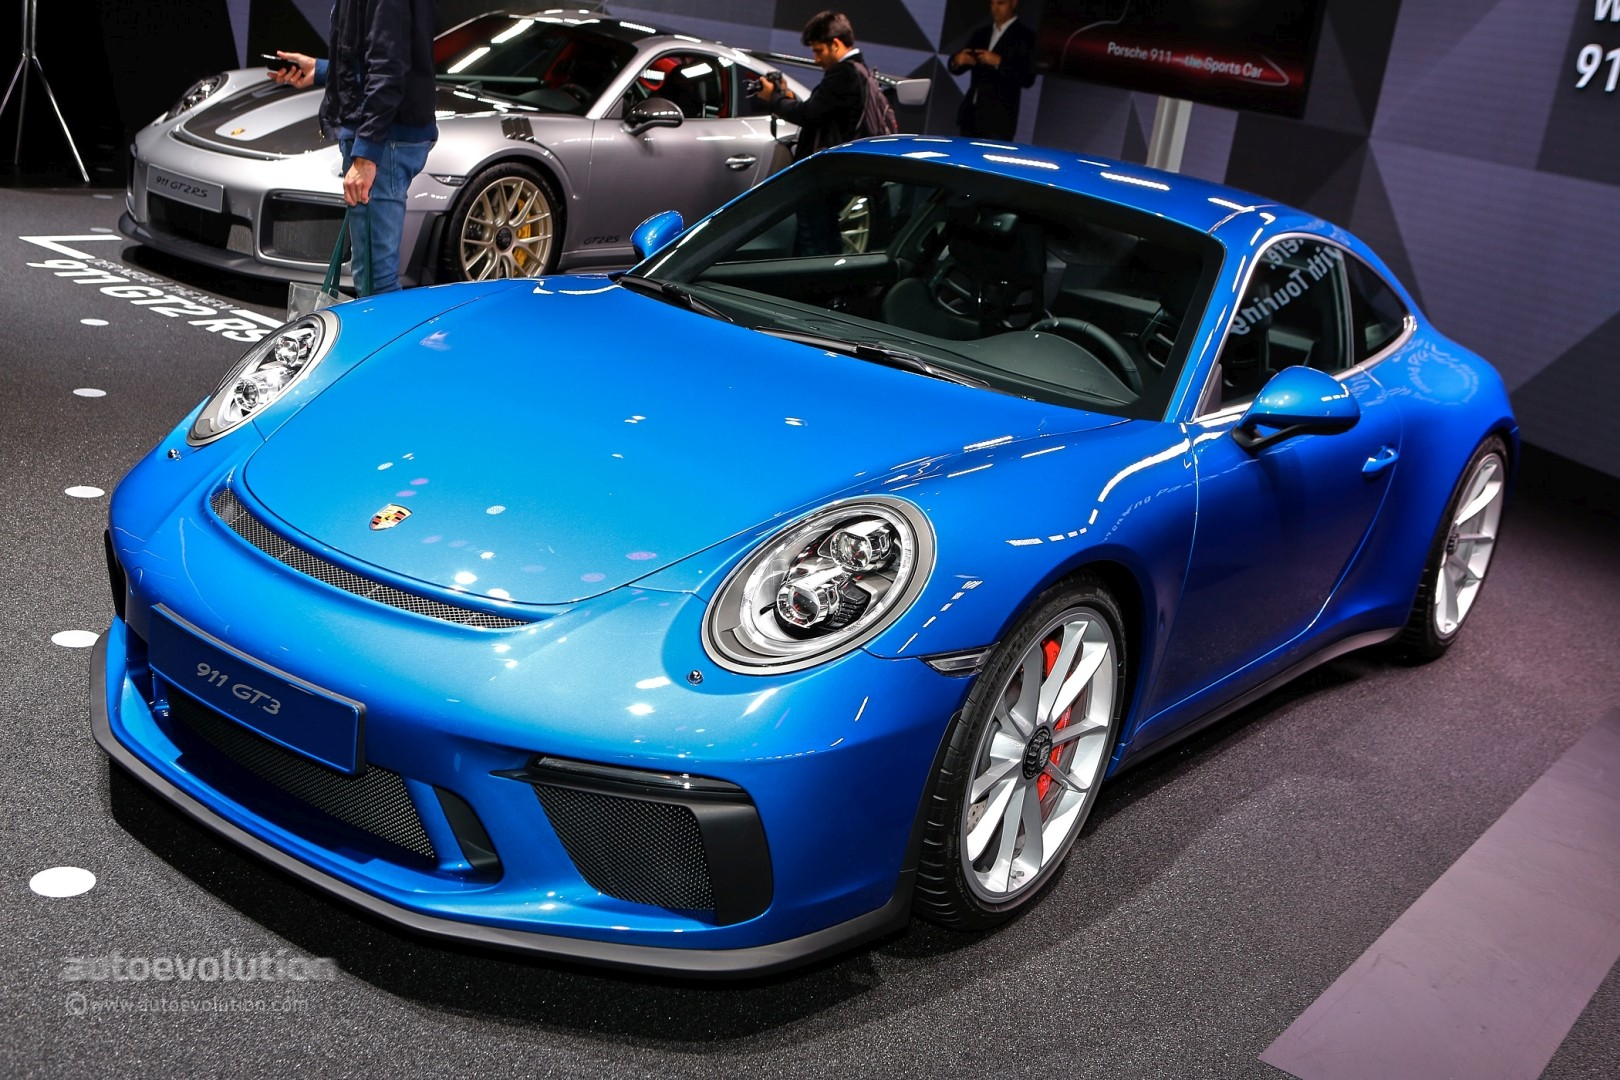 2018 porsche 911 gt3 touring package prototype shows 911 r. Black Bedroom Furniture Sets. Home Design Ideas